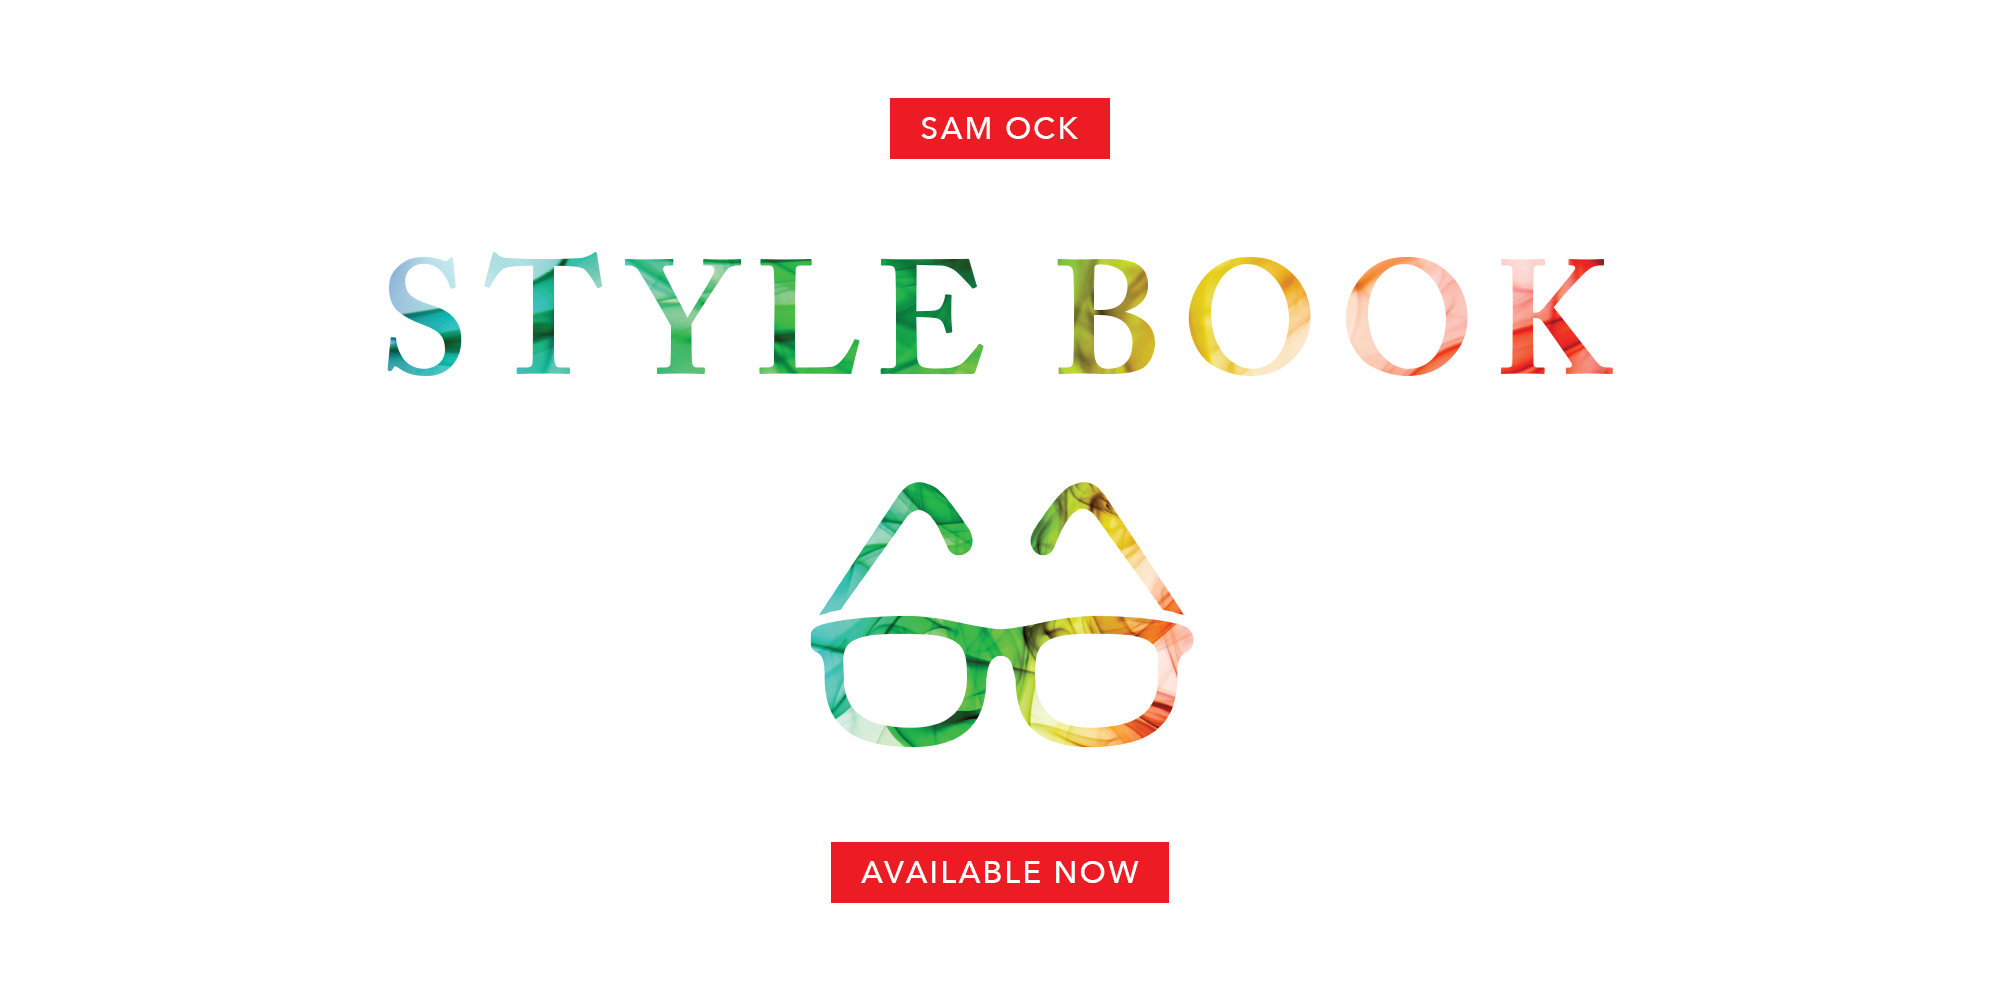 Sam Ock - Style Book Available Now.png